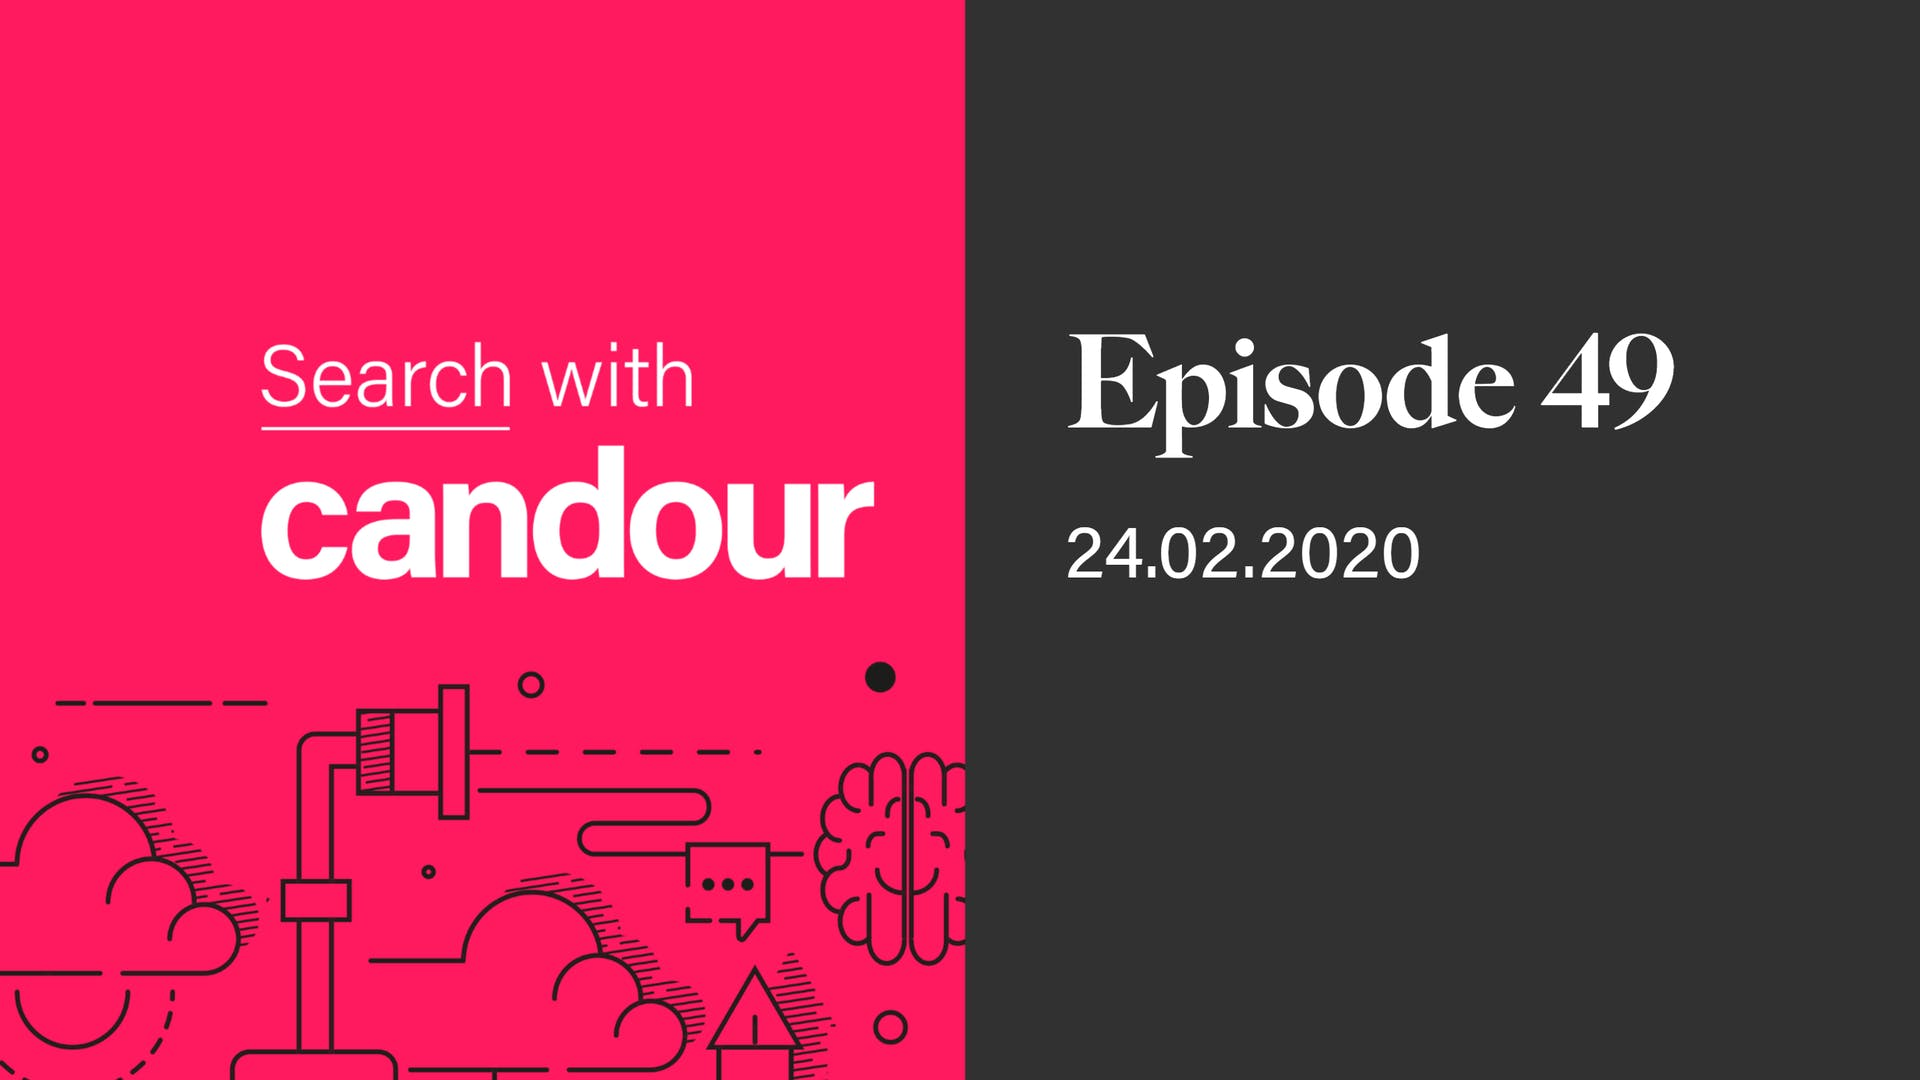 Search with Candour Episode 49